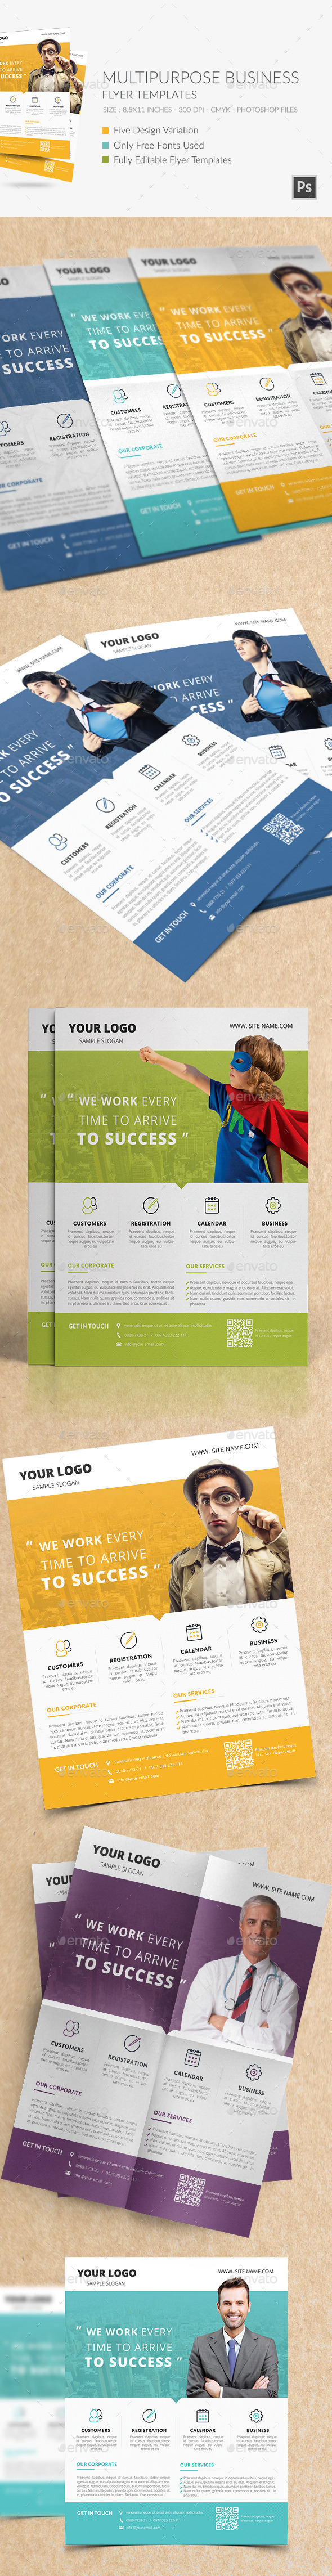 GraphicRiver Multipurpose Business Flyer Templates 9722787